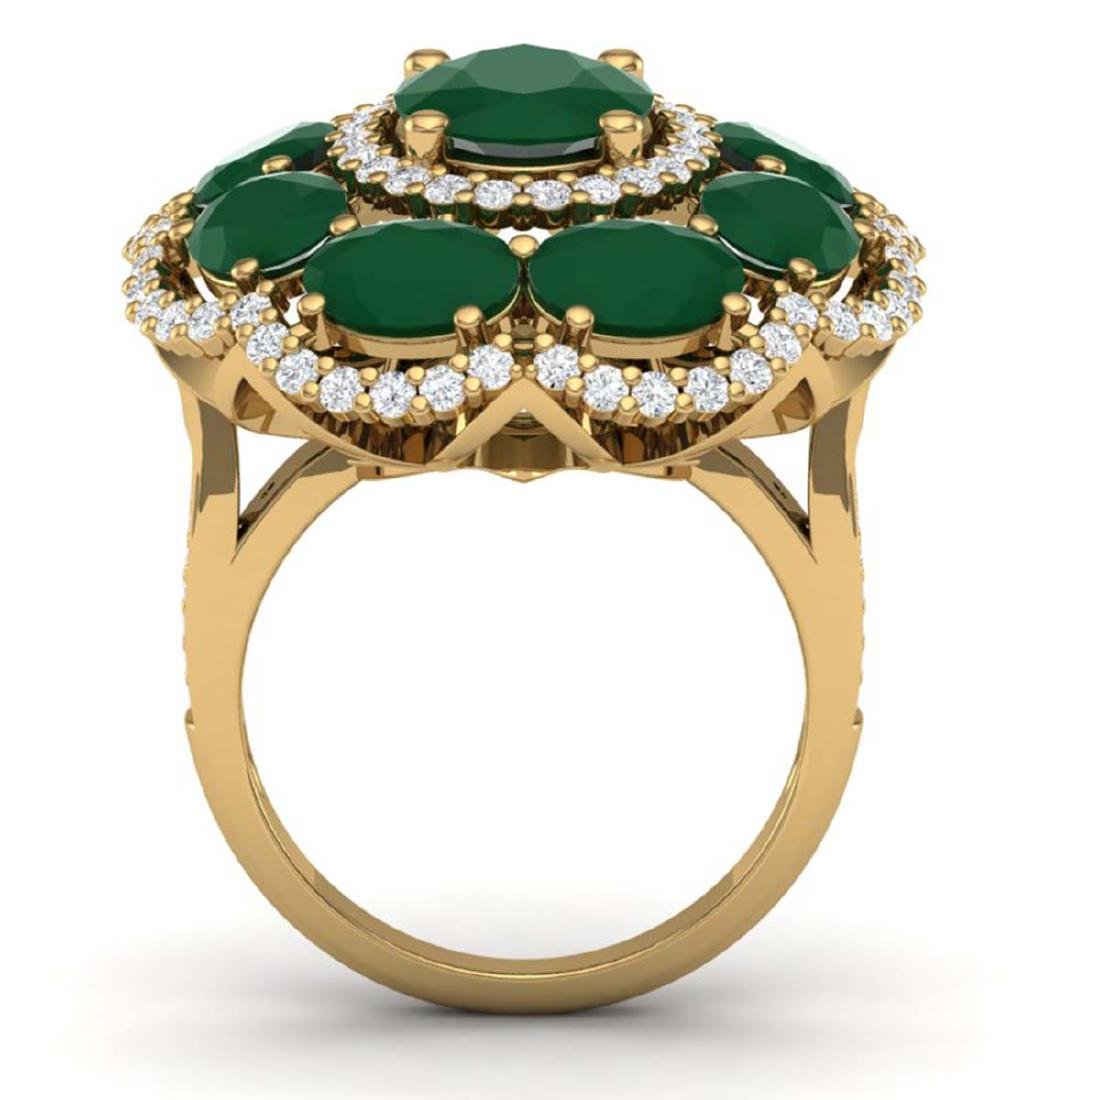 14.4 ctw Designer Emerald & VS Diamond Ring 18K Yellow - 3